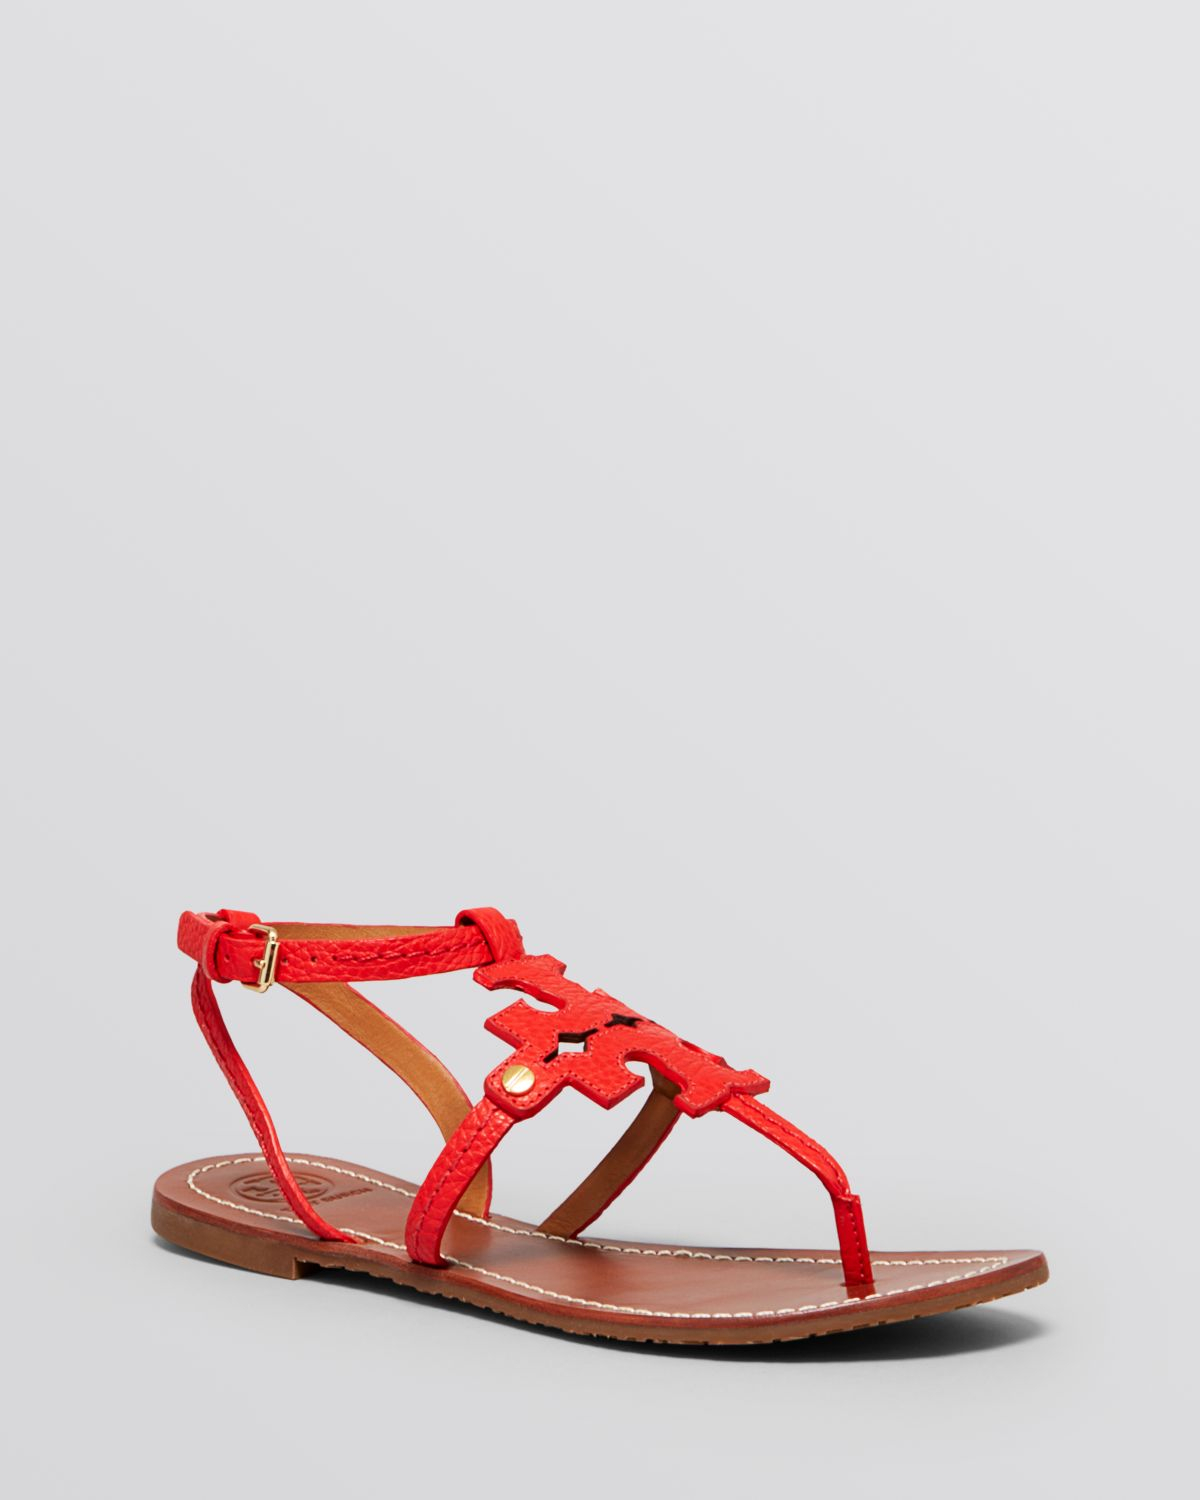 effd3c413 Tory Burch Flat Thong Sandals - Chandler Logo in Red - Lyst